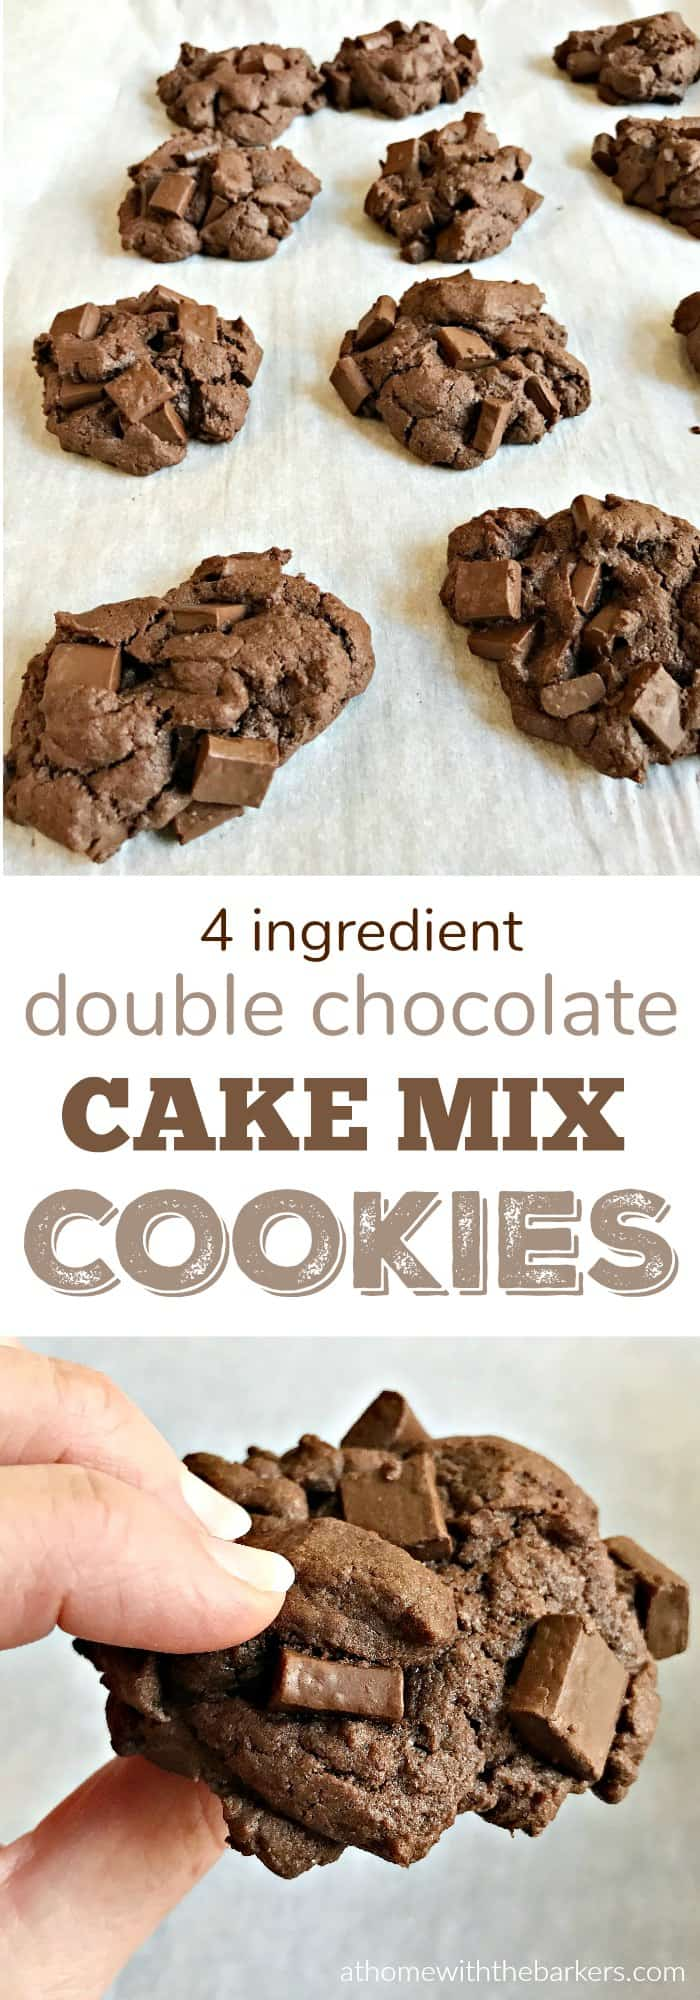 Double Chocolate Cake Mix Cookies using only 4 Ingredients